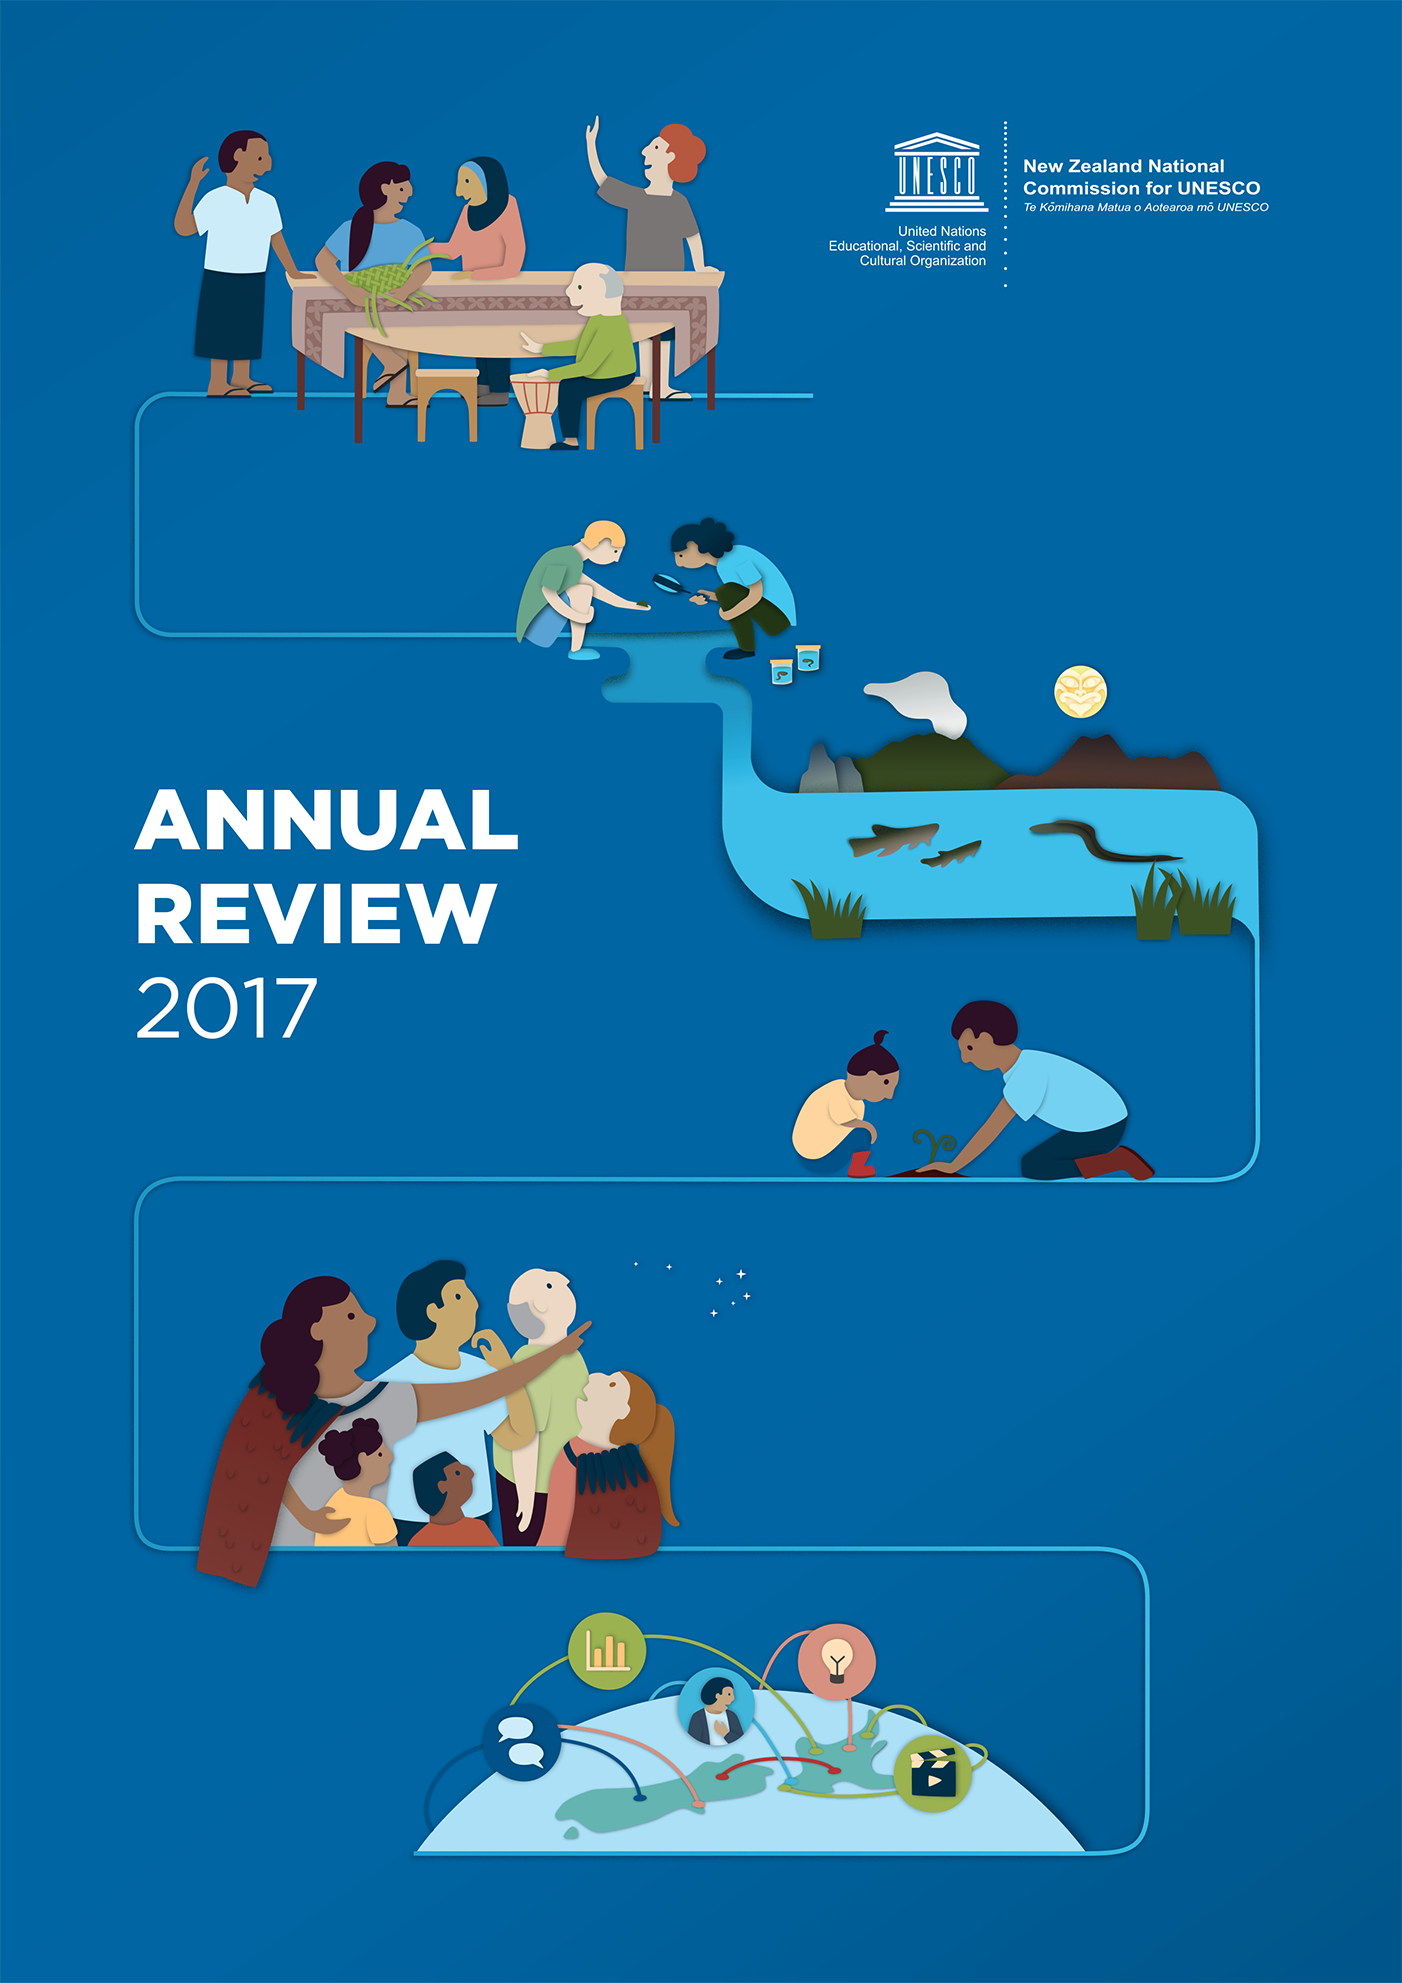 Gusto UNESCO annual report illustration